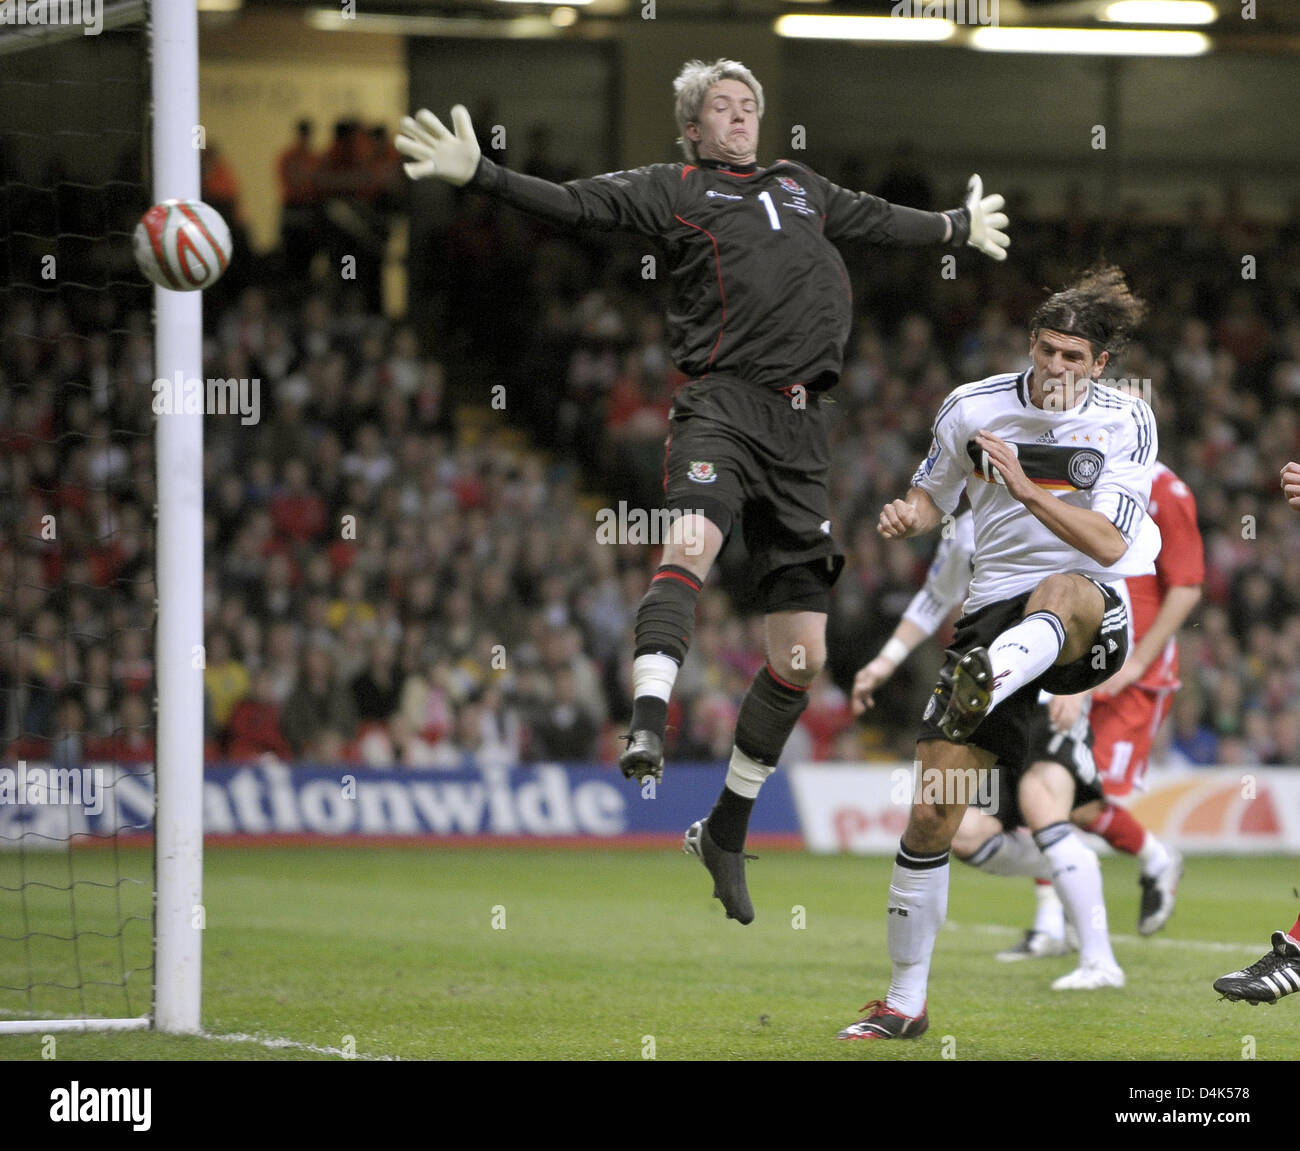 Germany?s Mario Gomez (2-R) is stopped by Wales? goalie Wayne Hennessey during the World Cup qualifying match Wales Stock Photo